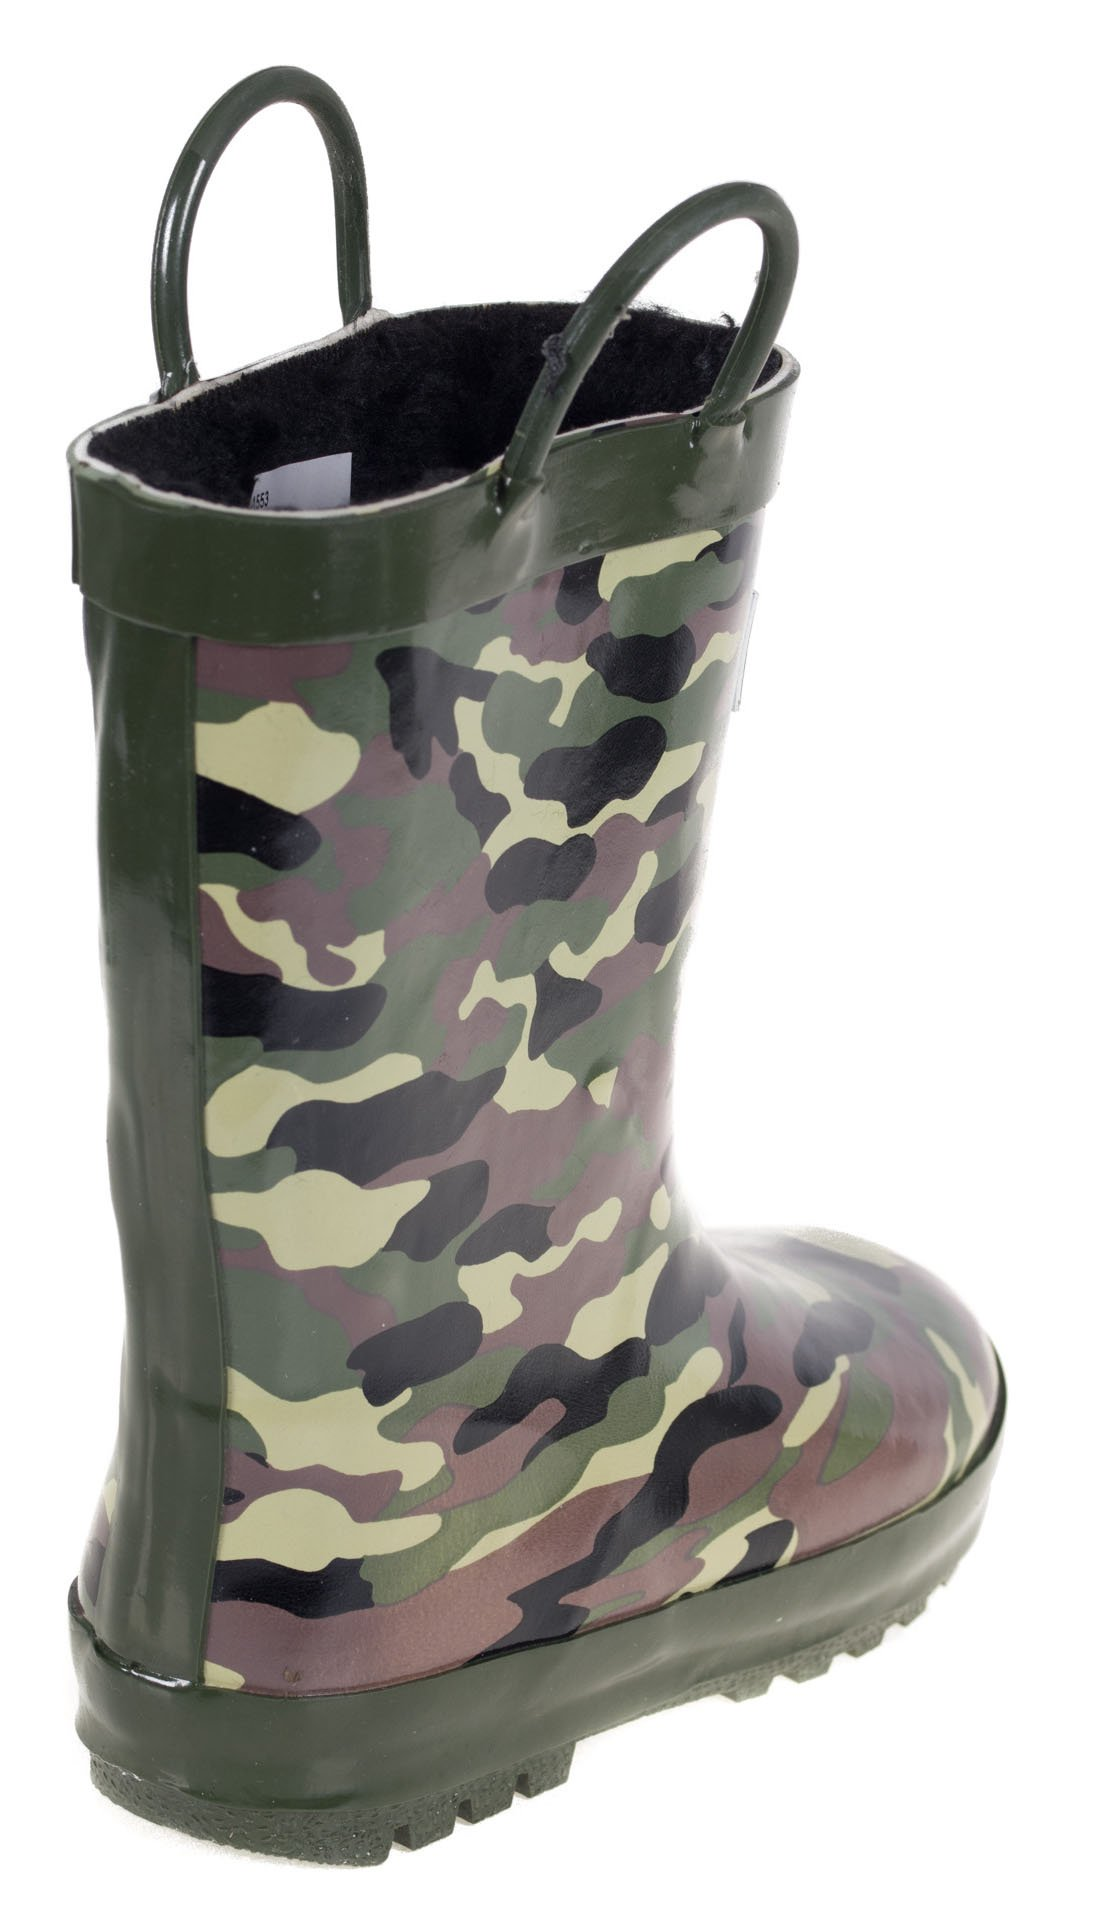 Boys Rain Rubber Boots, Best Warm Faux Fur Lined for Boys, Camo Army, Size 13 by Forever Young (Image #3)